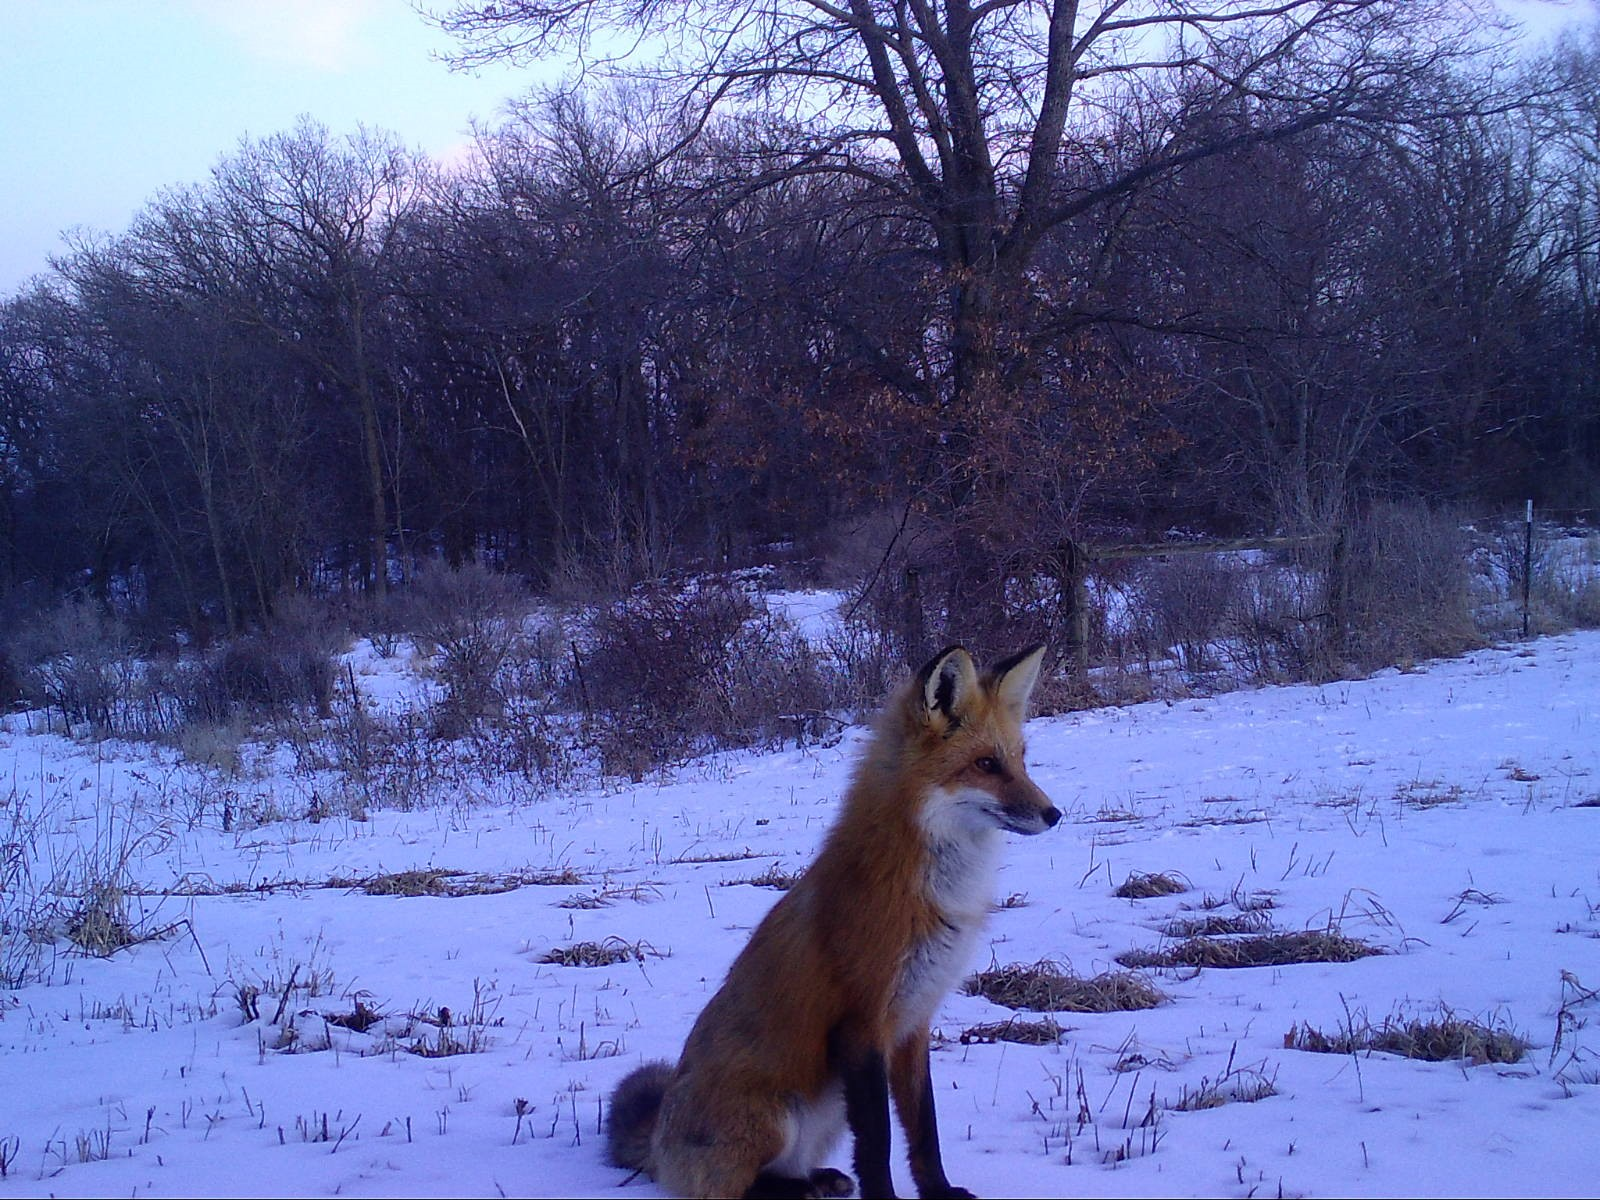 A red fox sitting in the snow